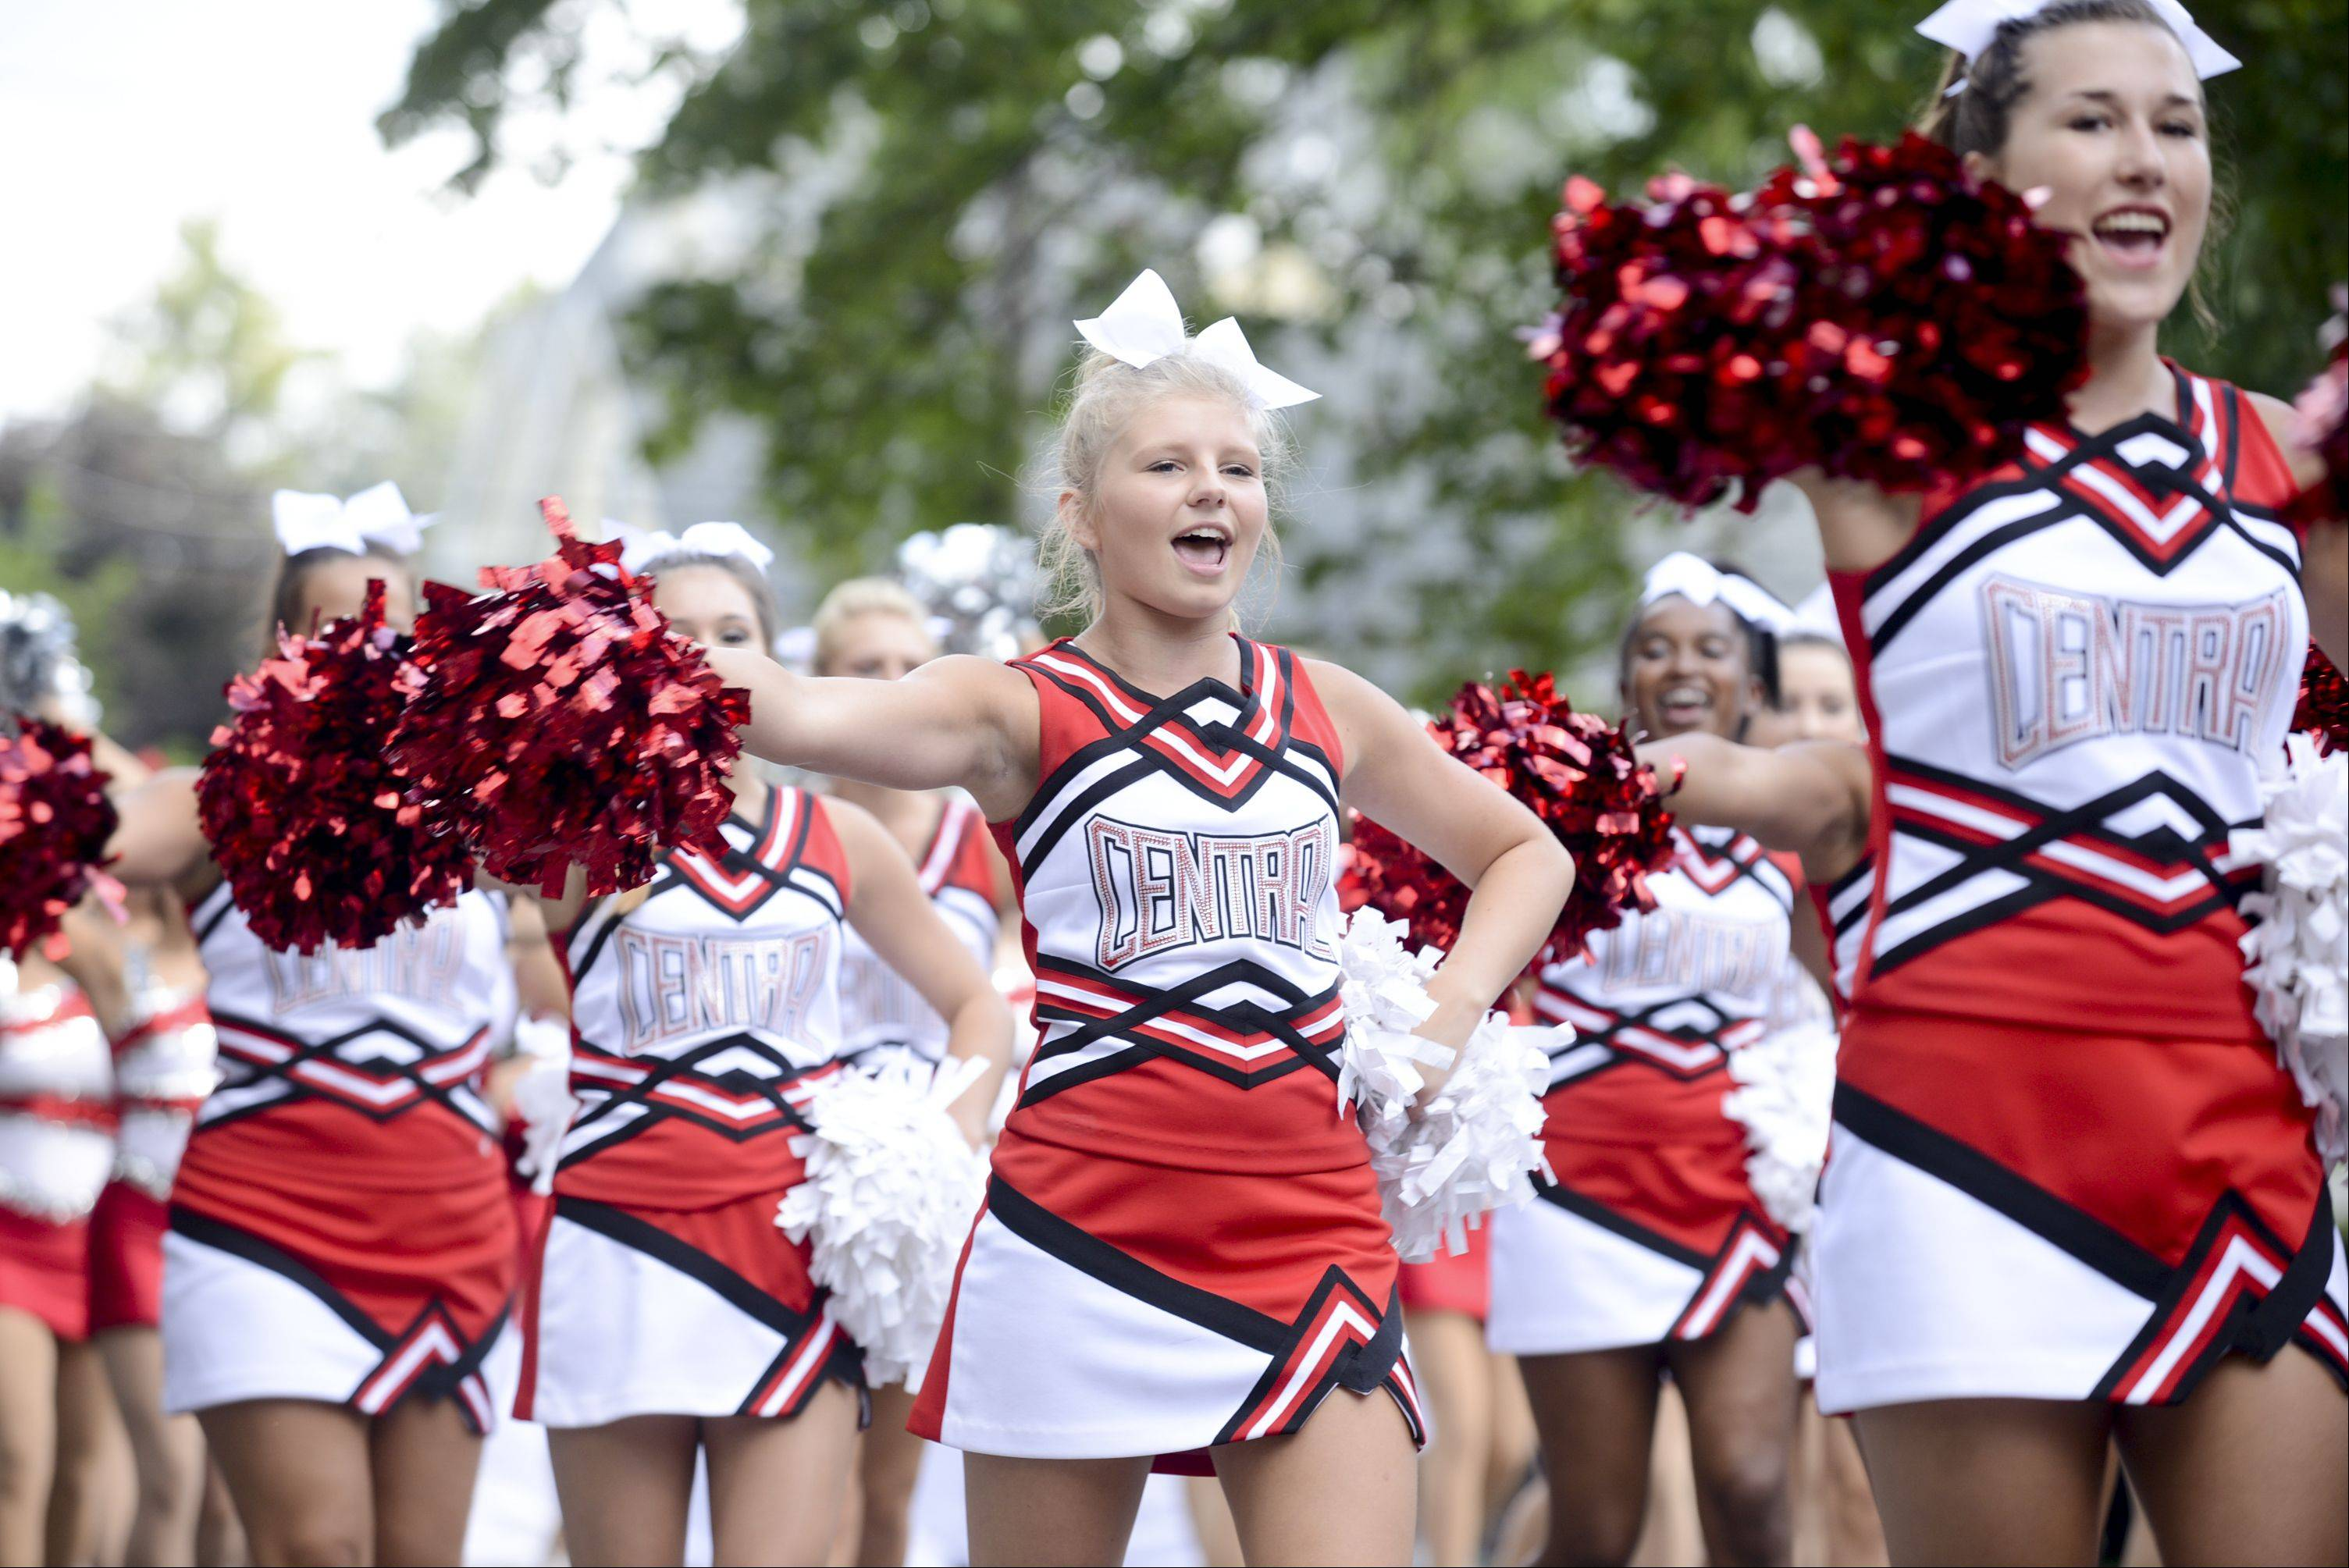 Naperville Central High School's pom team march and perform in the Labor Day parade that kicked off the last day of the annual Last Fling in Naperville.